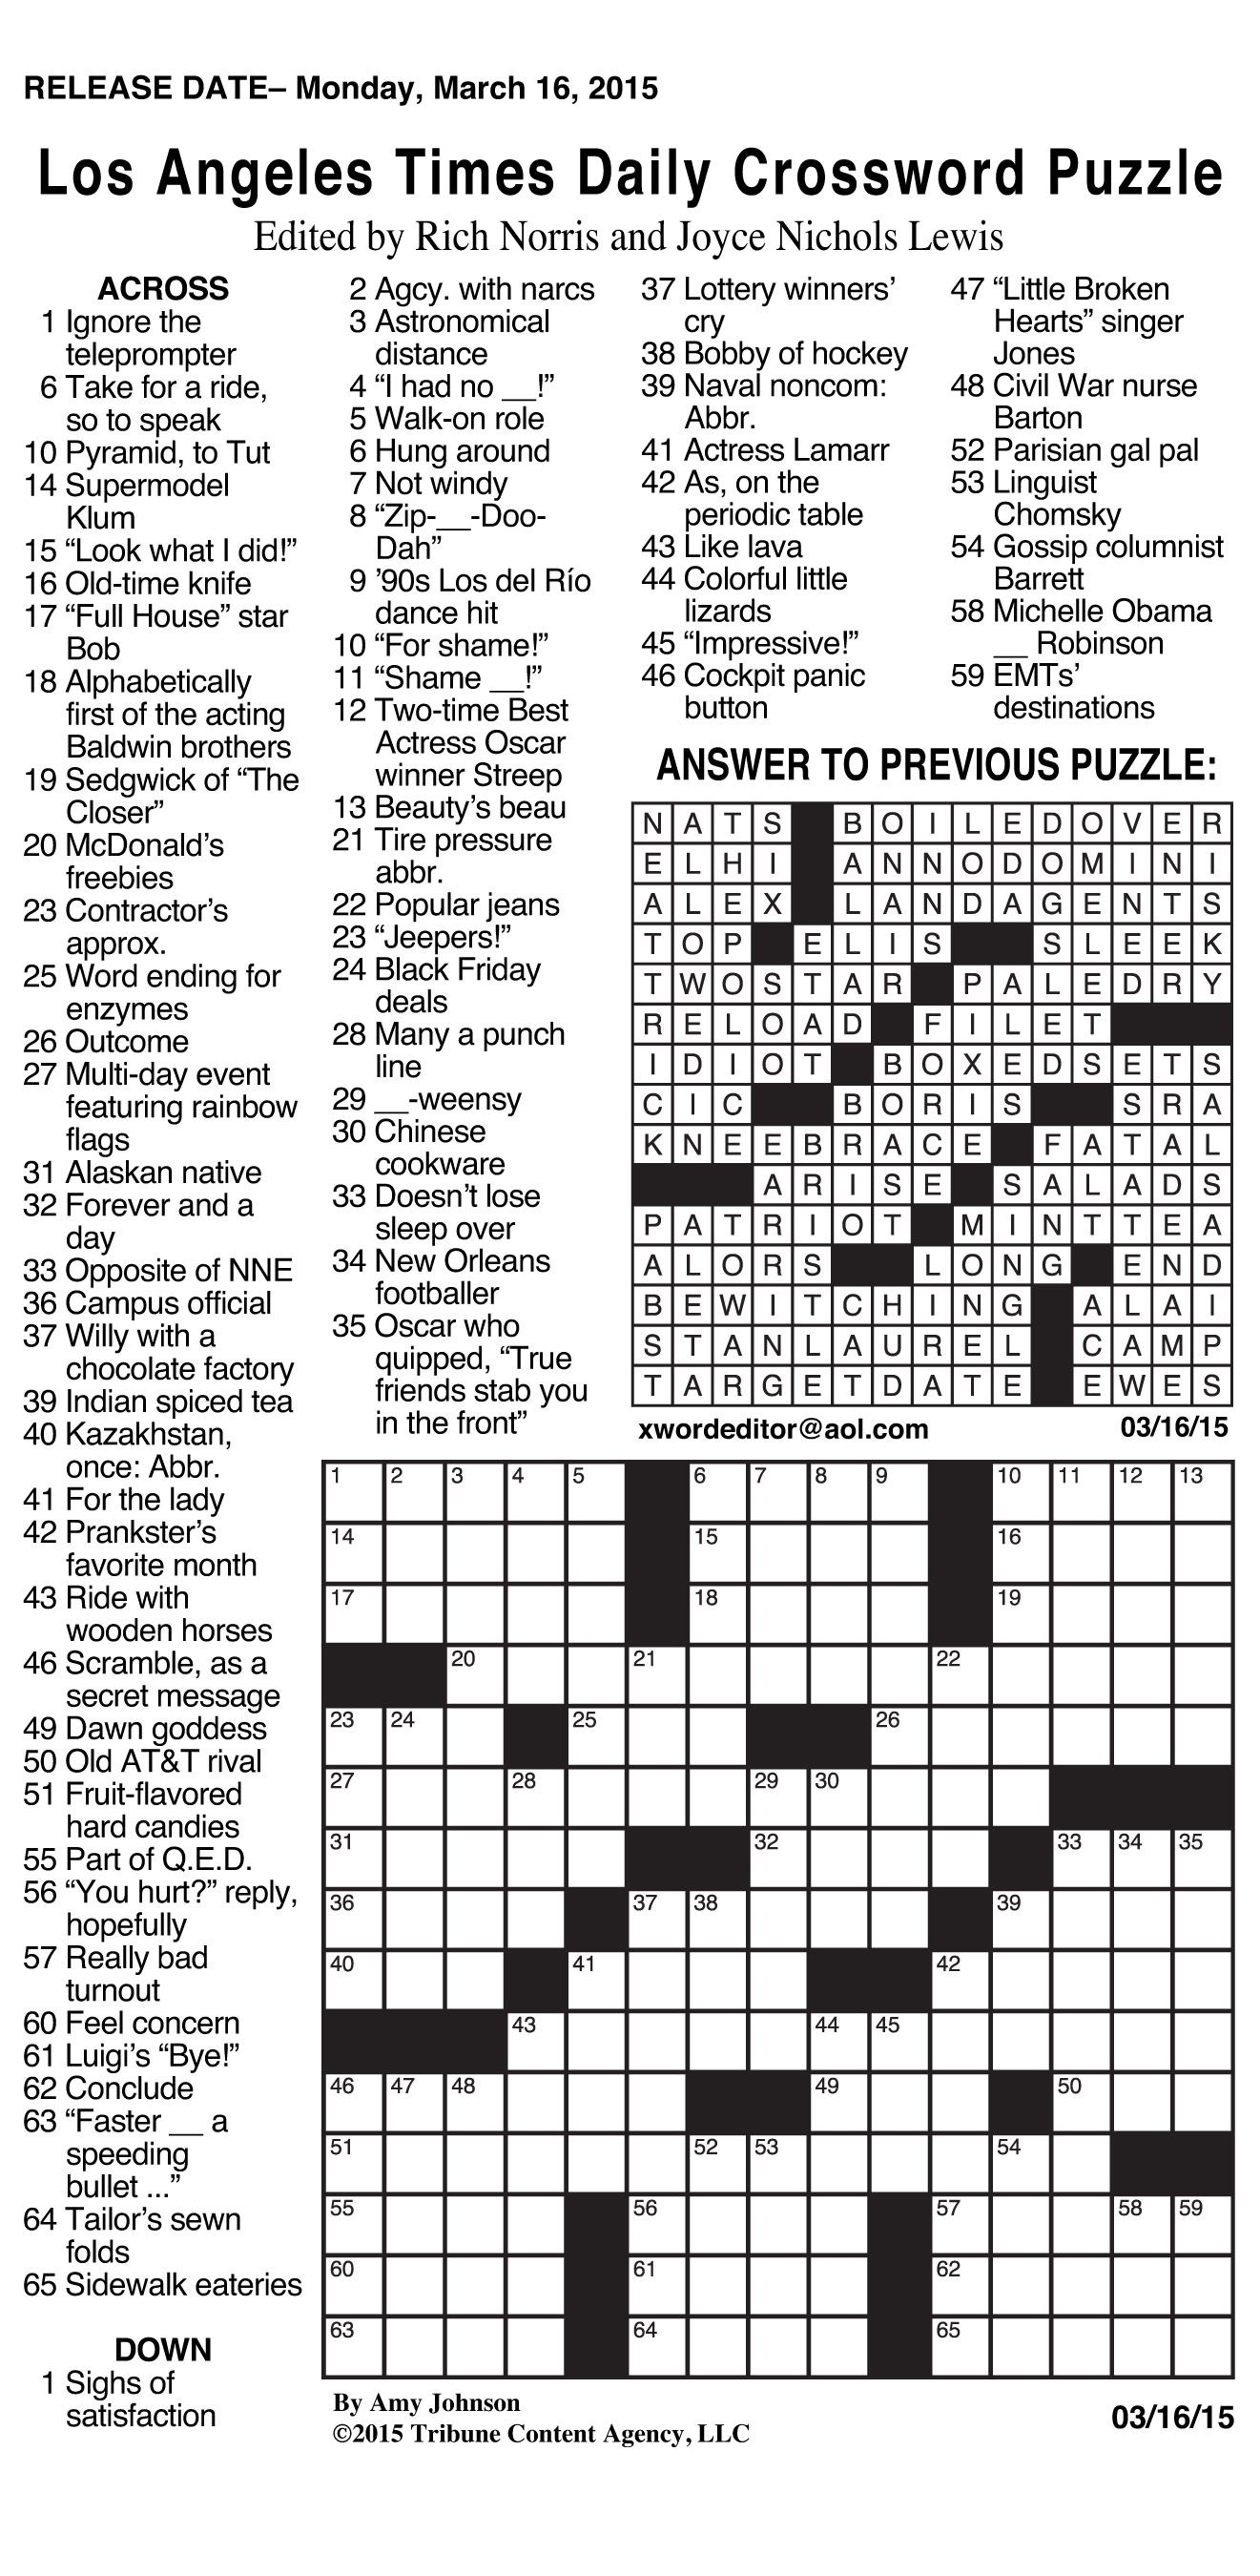 Daily Crossword Puzzle Printable – Jowo - Free La Times Crossword - Printable Daily Crossword La Times